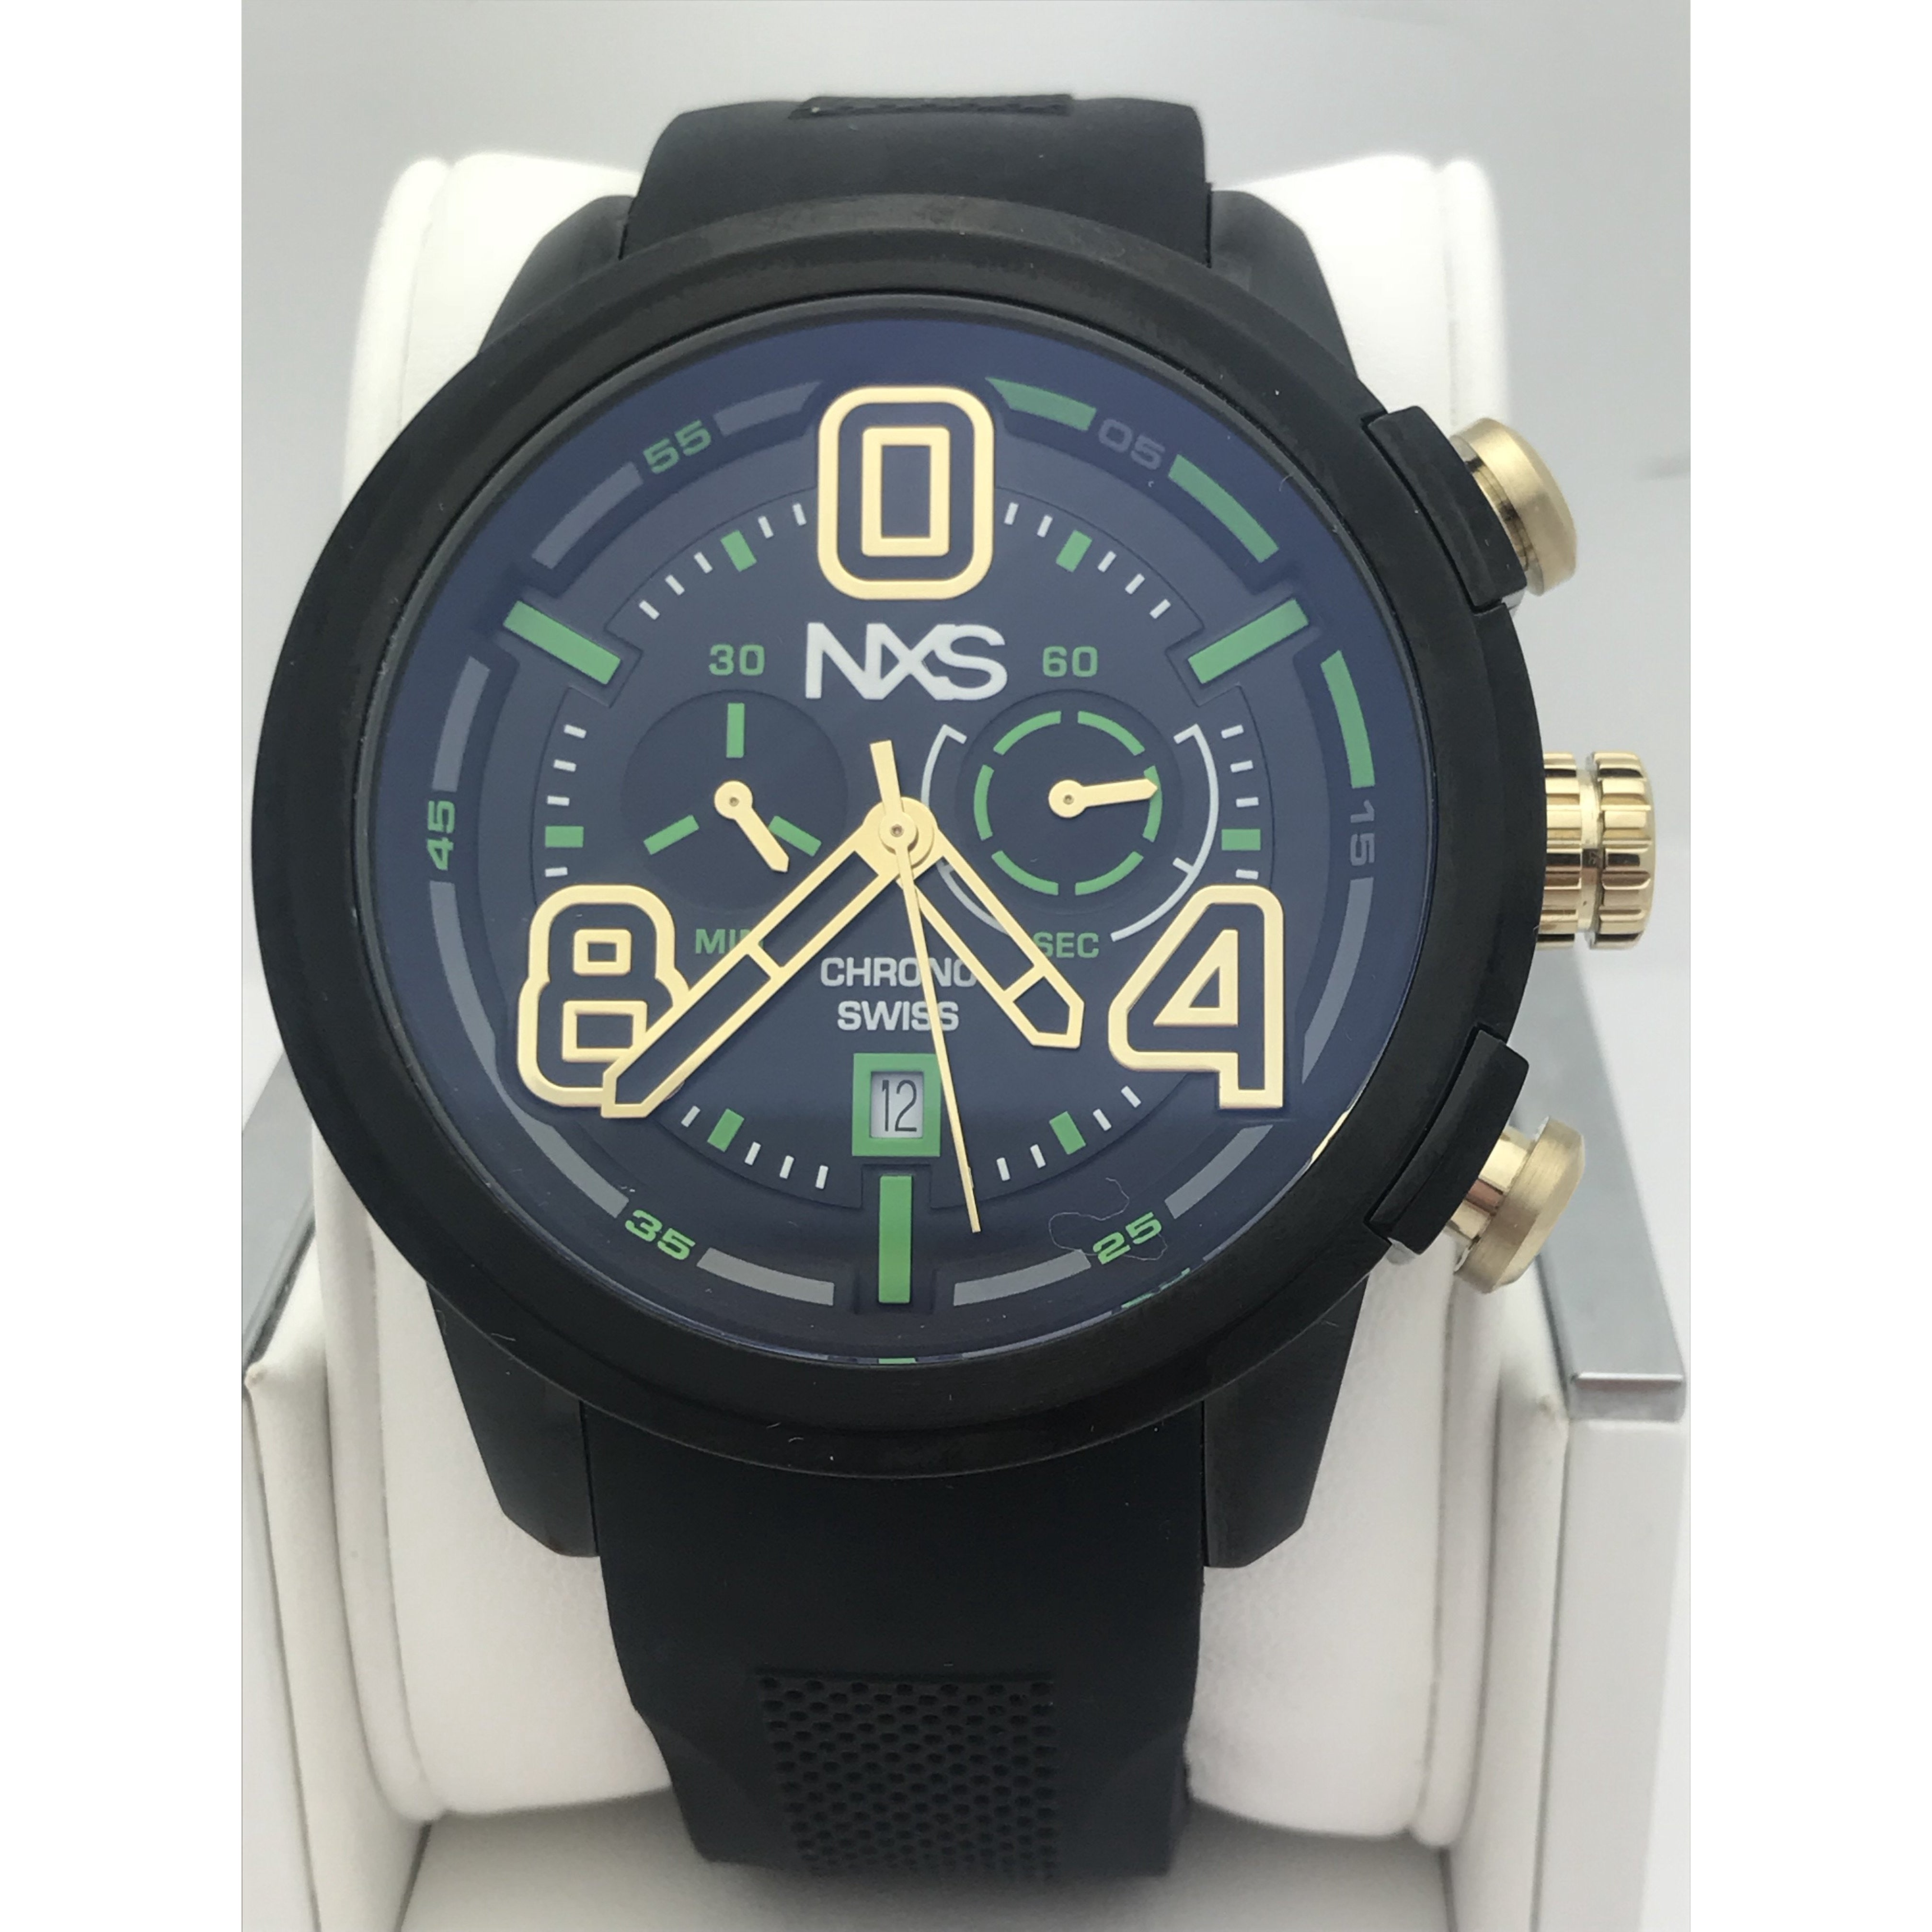 NXS Men's Pastrana Chrono Swiss Black Textured Silicone Watch 14102